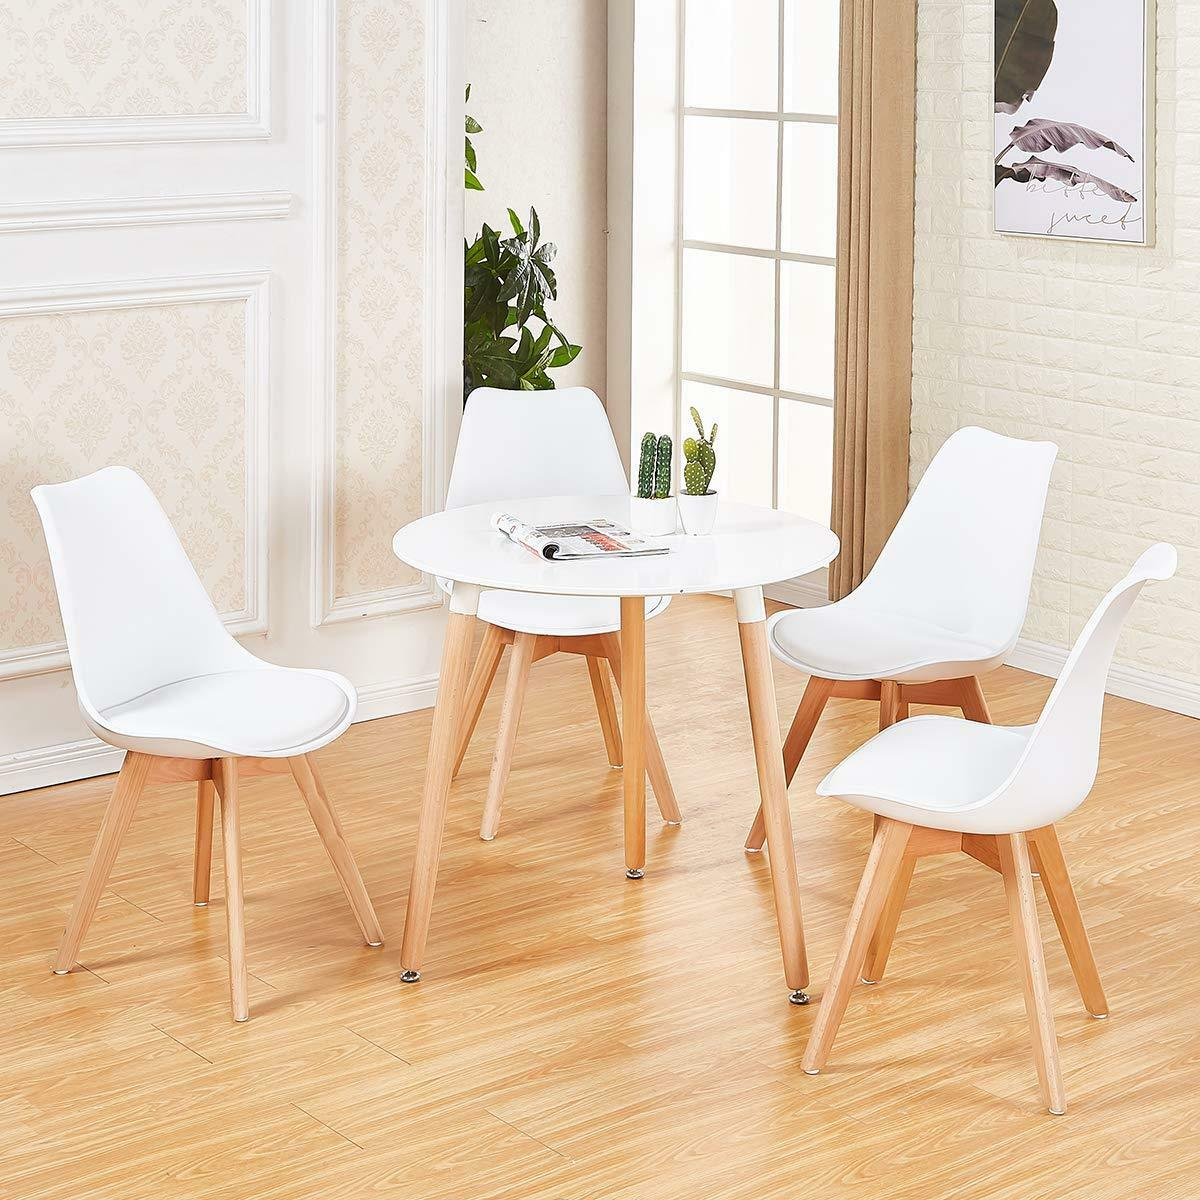 White Wooden Dining Chairs Details About White Round Dining Table And 4 Retro Dining Chairs Solid Wood For Small Kitchen